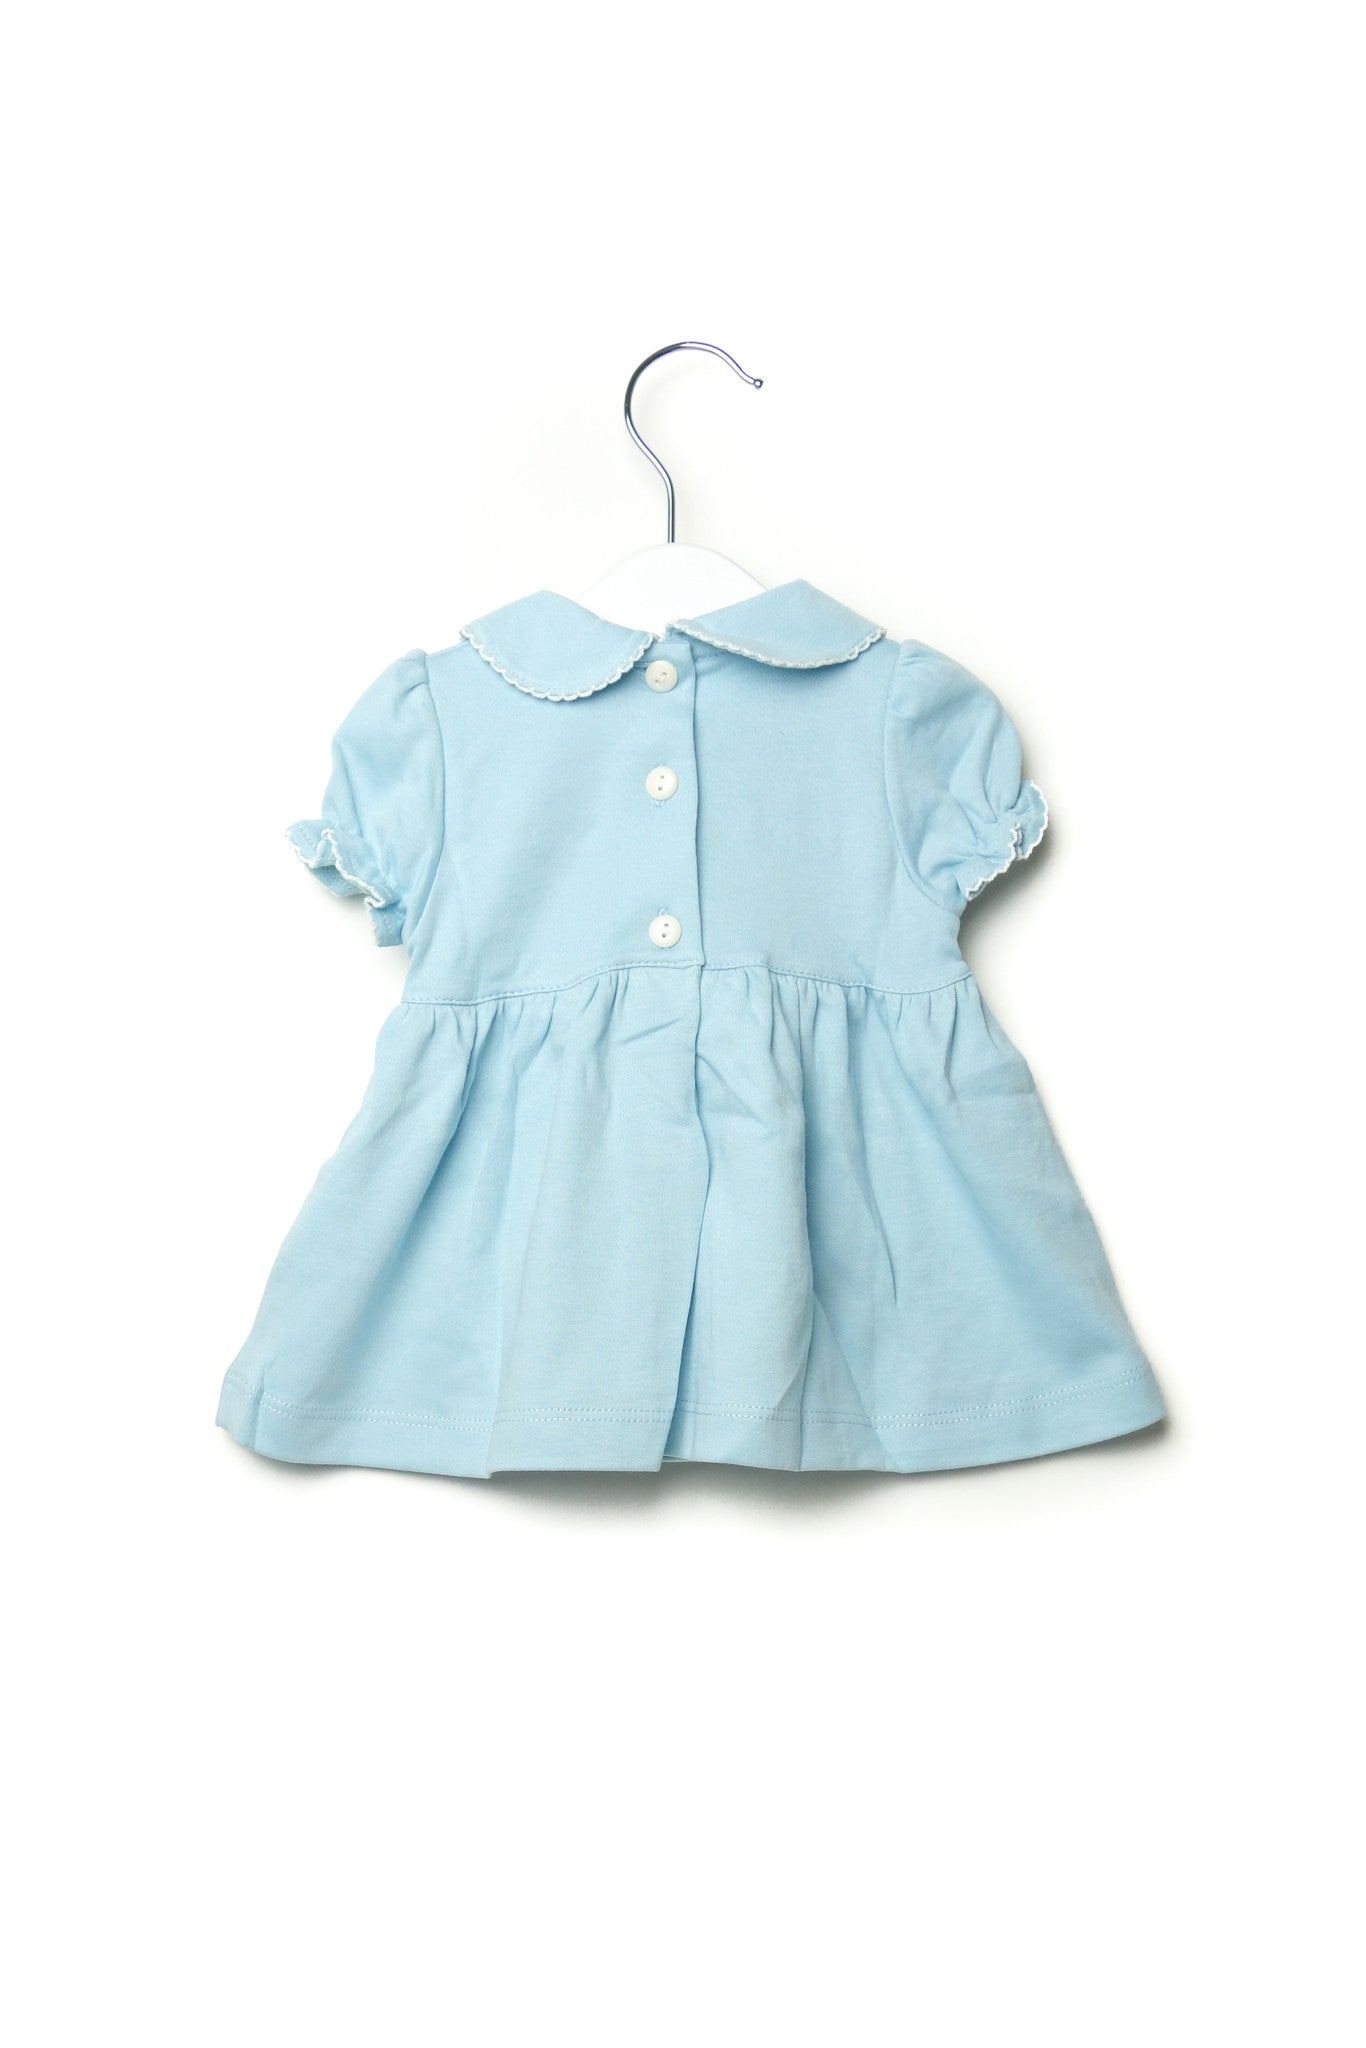 10001679 Organic Family Baby~Dress 0-3M at Retykle